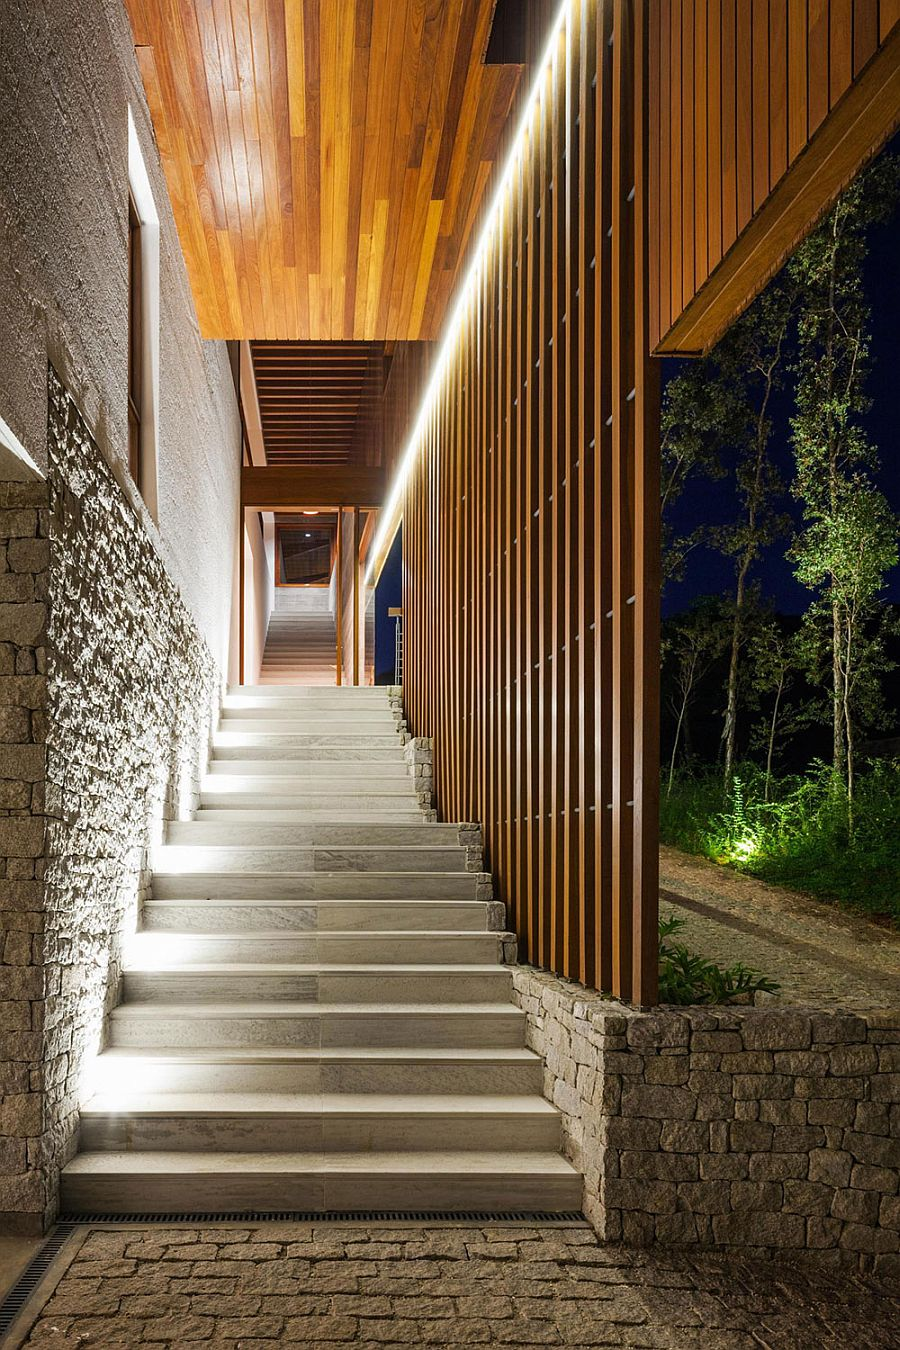 Beautiful lighting illuminates the stairway leading to the Brazilian home